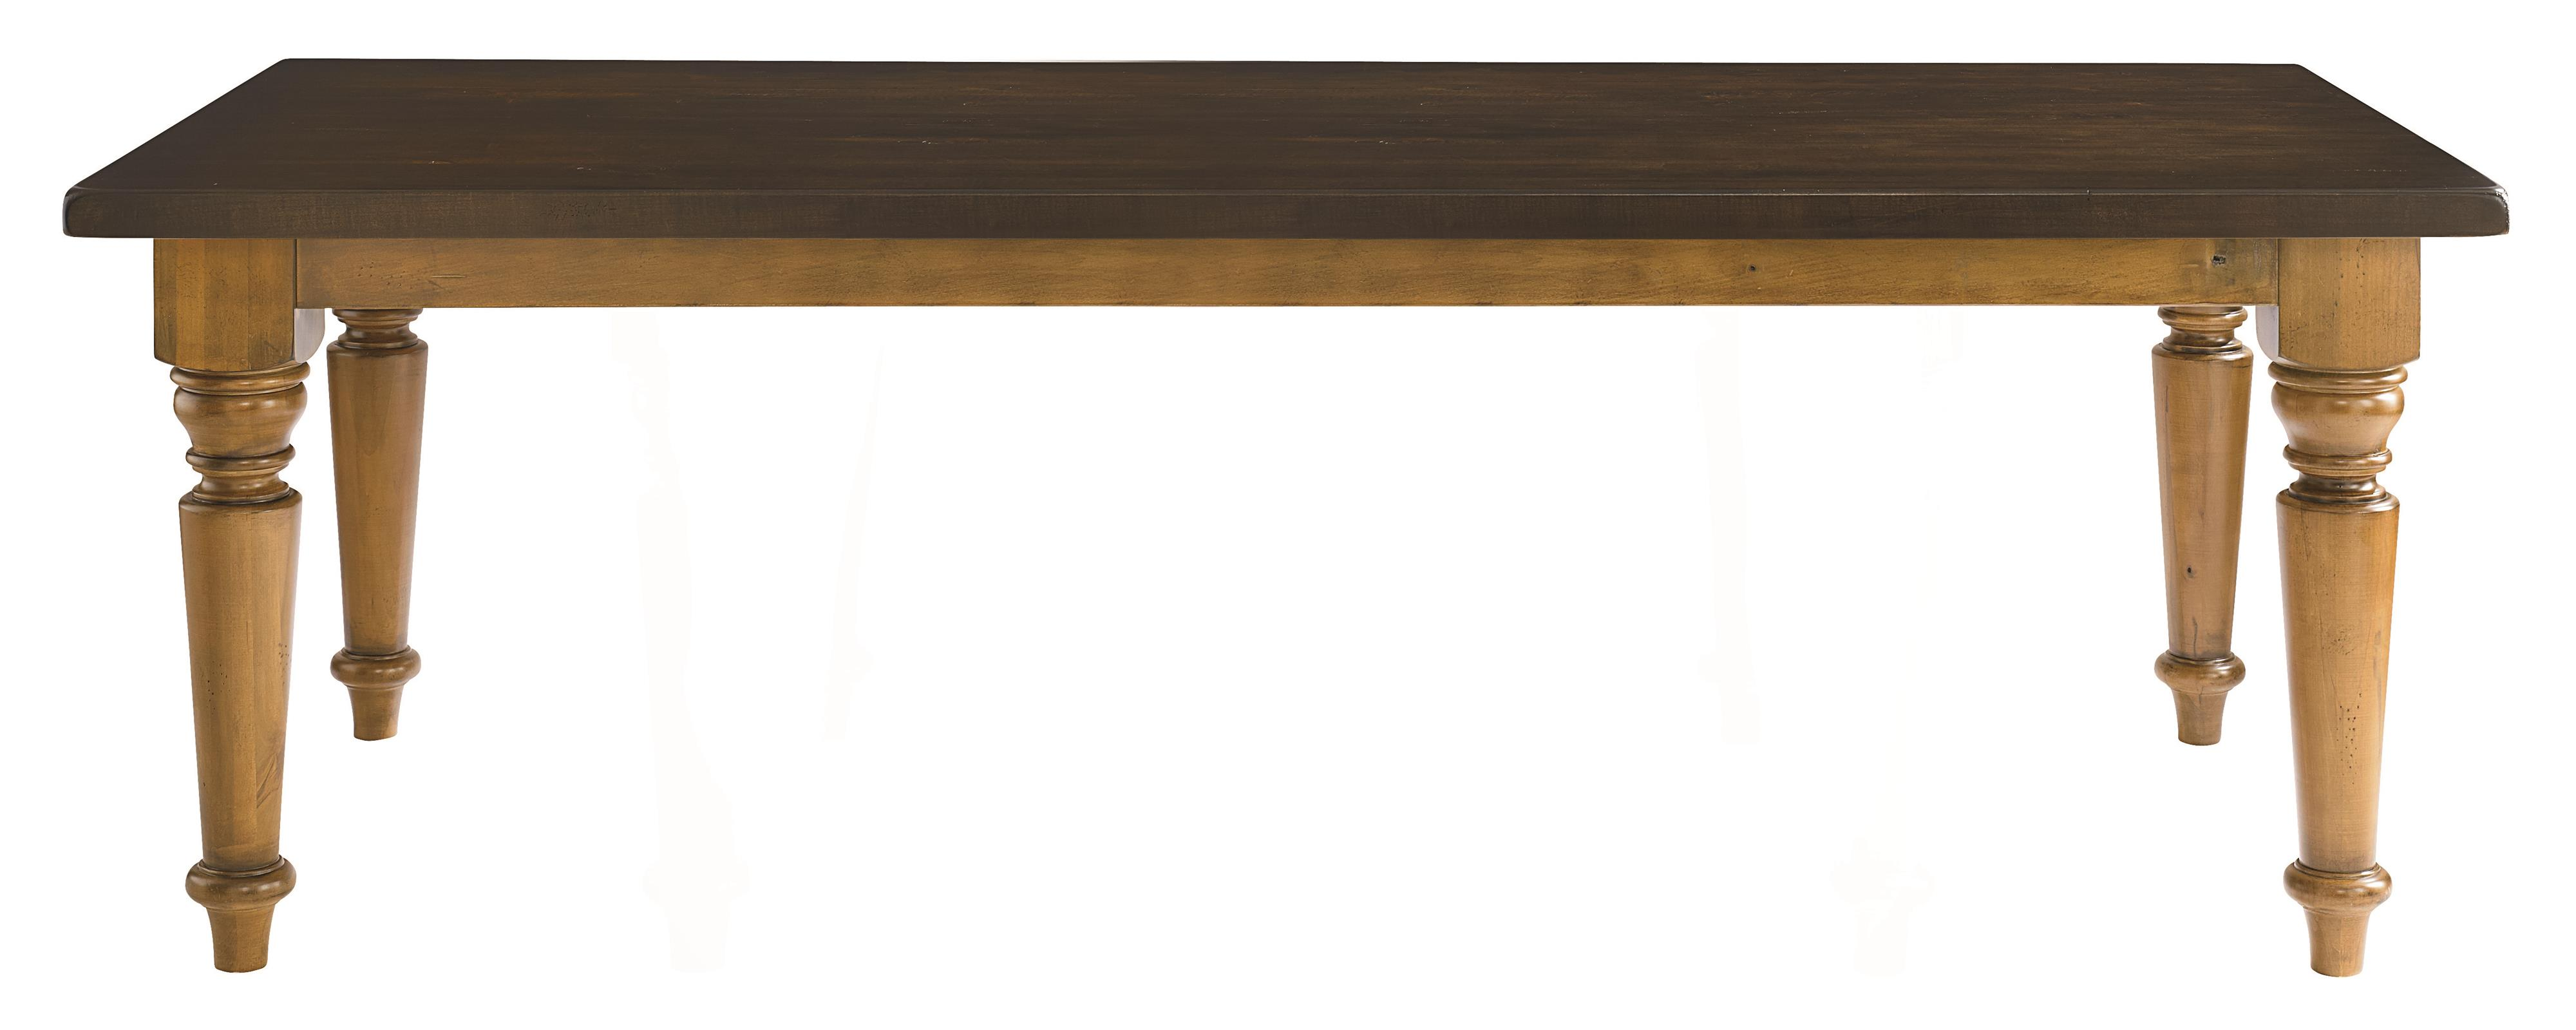 Bassett bench made 4015 4290 90 rectangle farmhouse table for F table 90 confidence